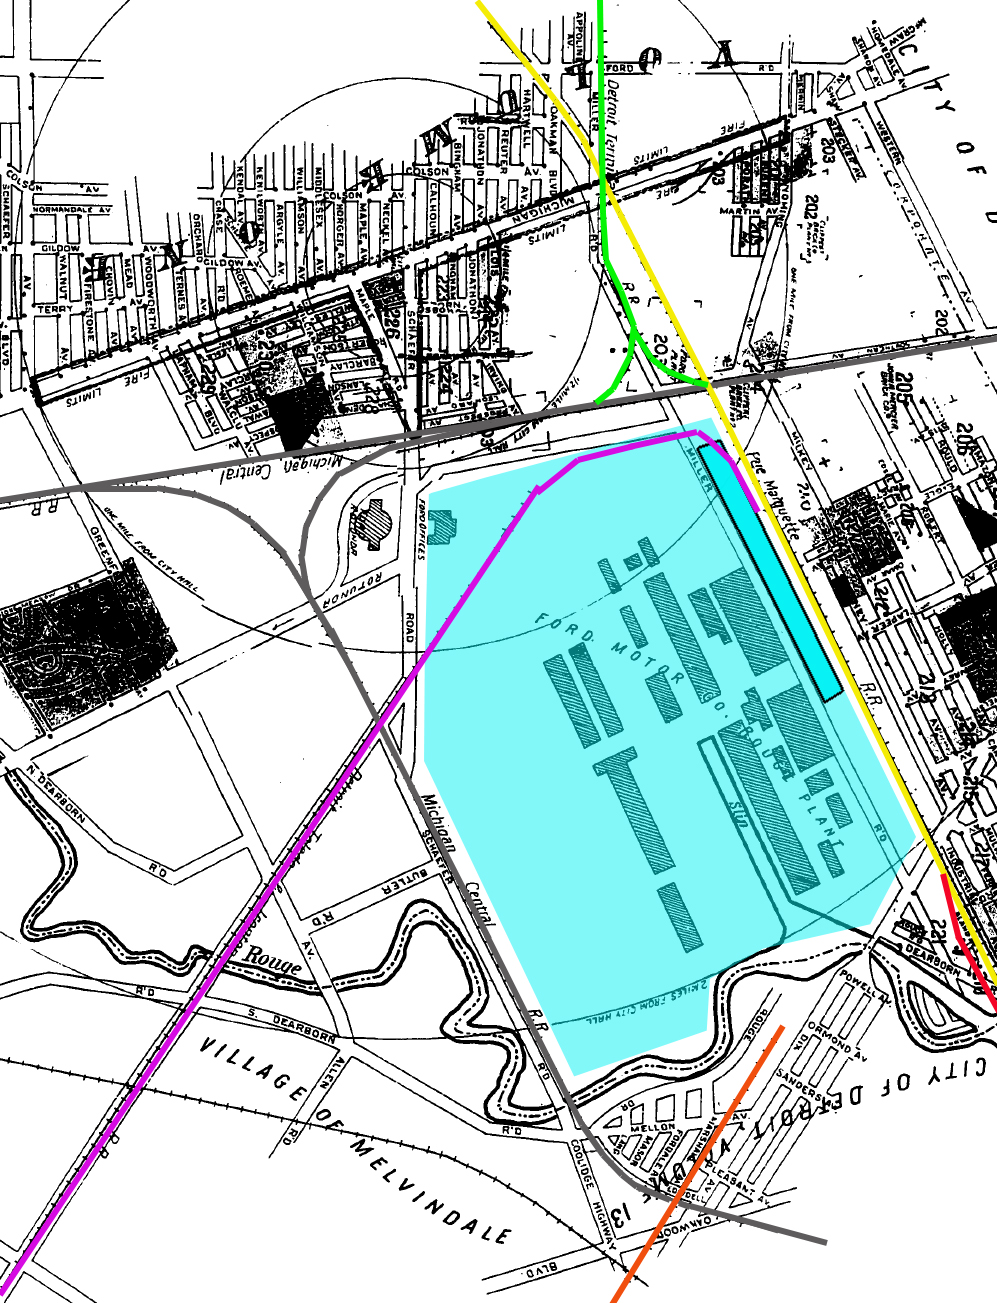 i ve highlighted the ford plant in blue and the darker blue with the black rectangular border is the location of the shipping side of the plant at least